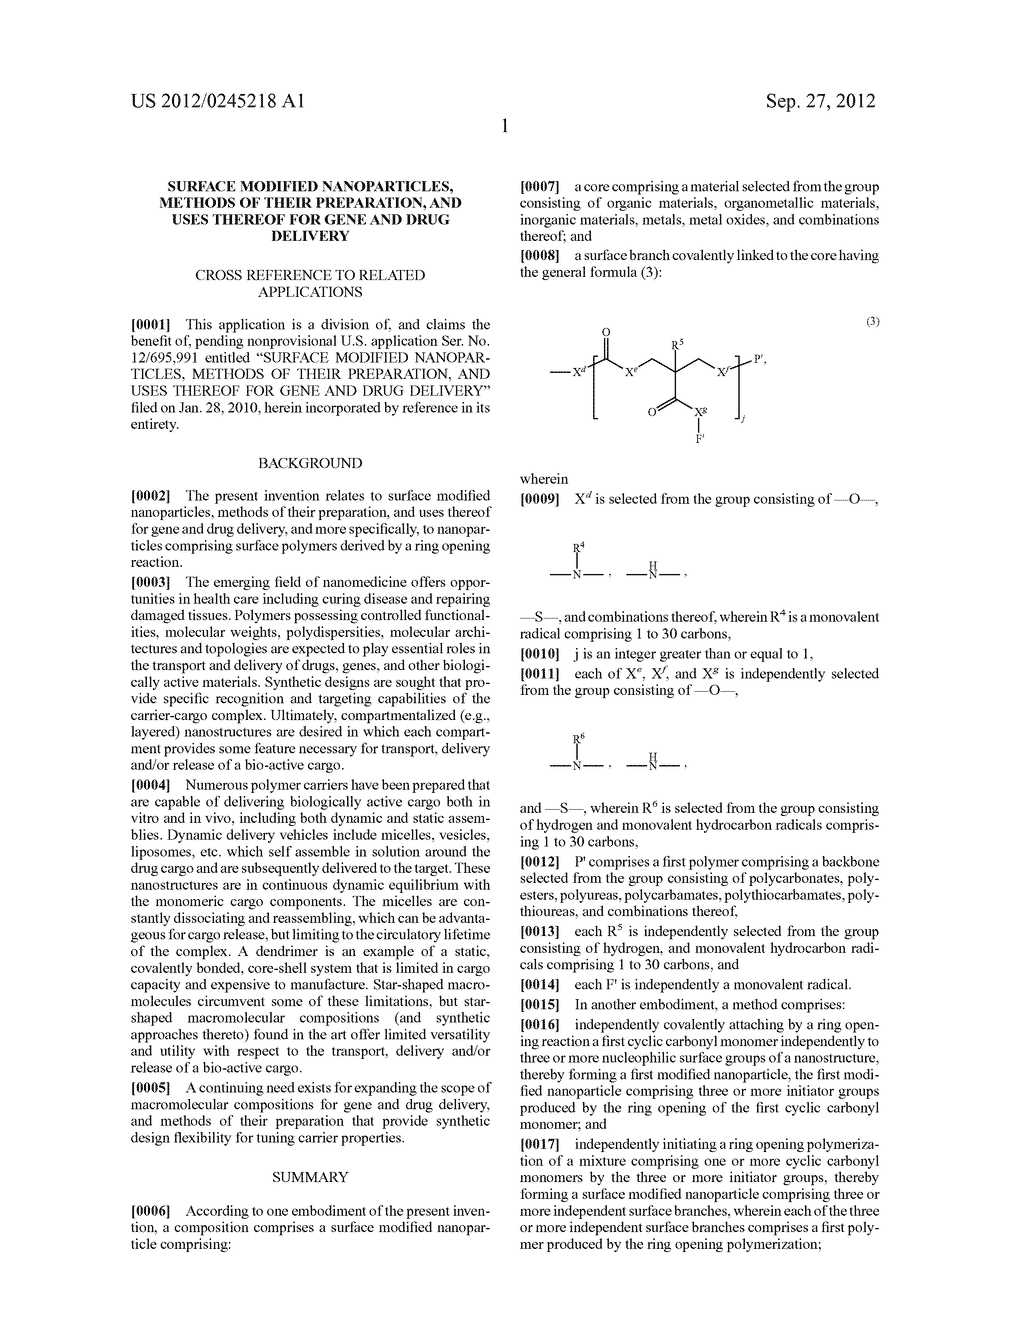 SURFACE MODIFIED NANOPARTICLES, METHODS OF THEIR PREPARATION, AND USES     THEREOF FOR GENE AND DRUG DELIVERY - diagram, schematic, and image 02